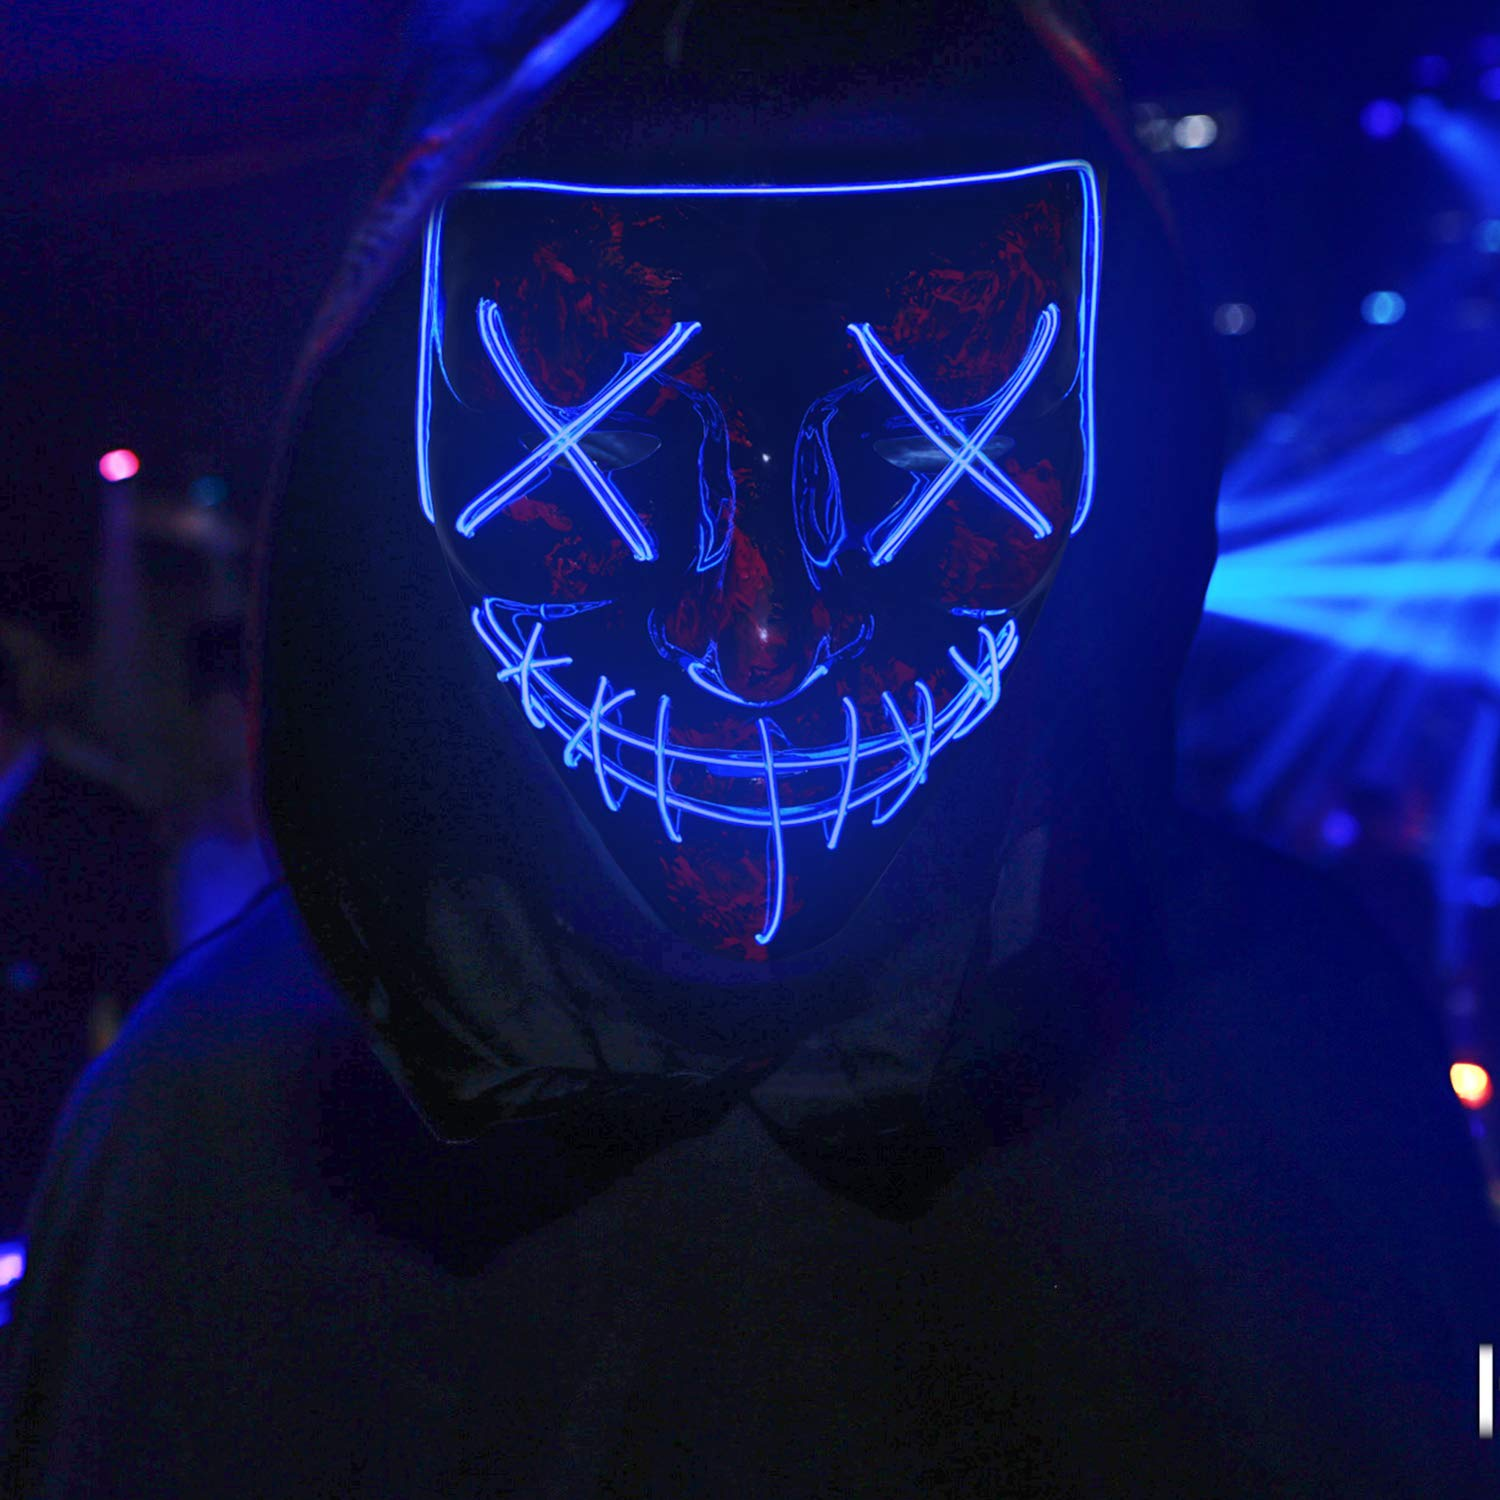 Light up Mask Yostyle Halloween Mask Cosplay Led Costume Mask EL Wire Light up for Halloween Festival Party-Blue light